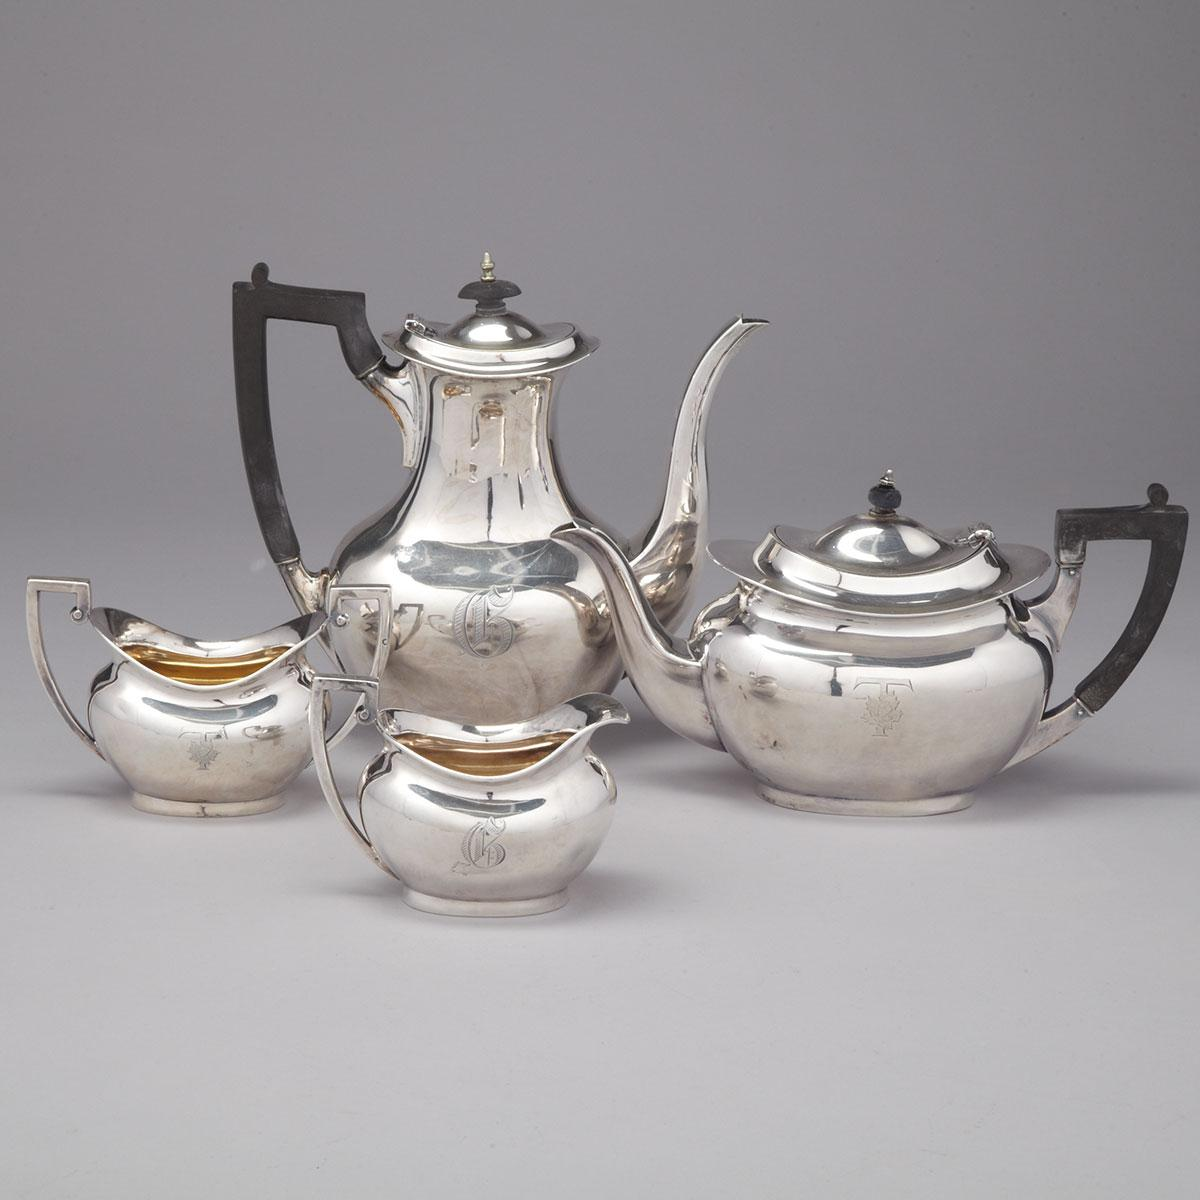 Canadian Silver Tea and Coffee Service, Roden Bros., Toronto, Ont., early 20th century